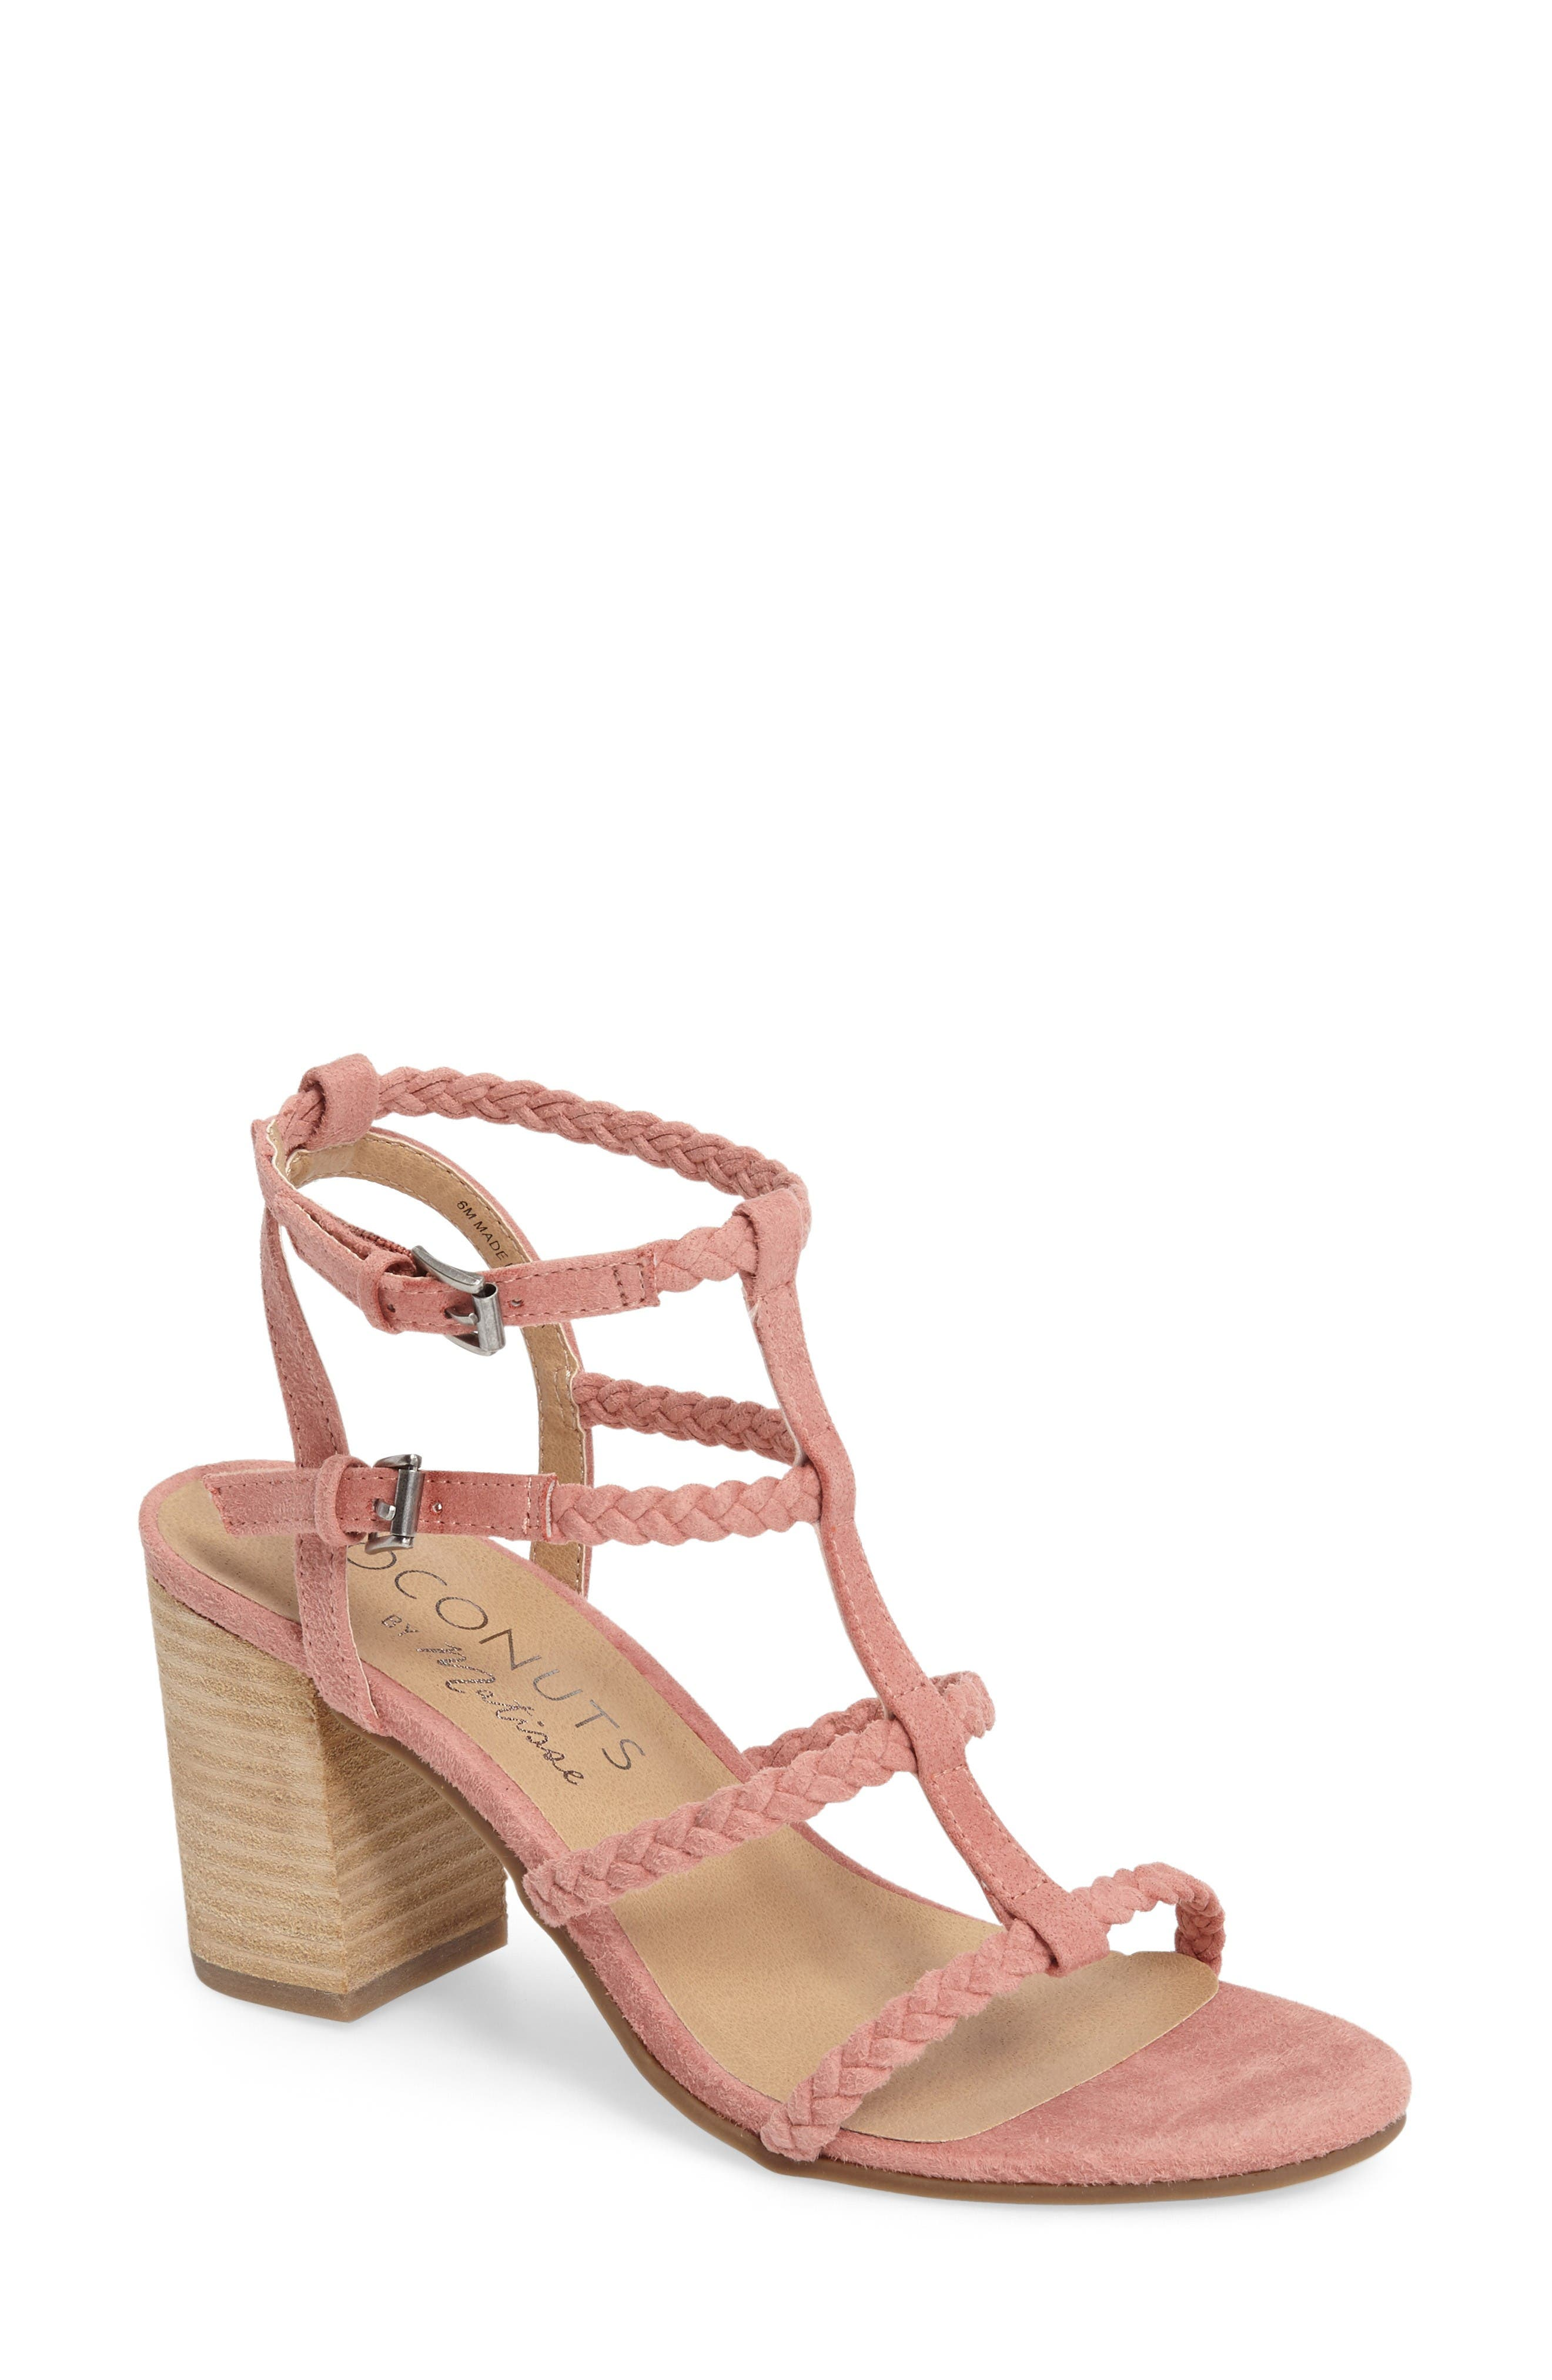 Coconuts by Matisse Cora Sandal,                             Main thumbnail 1, color,                             Pink Suede